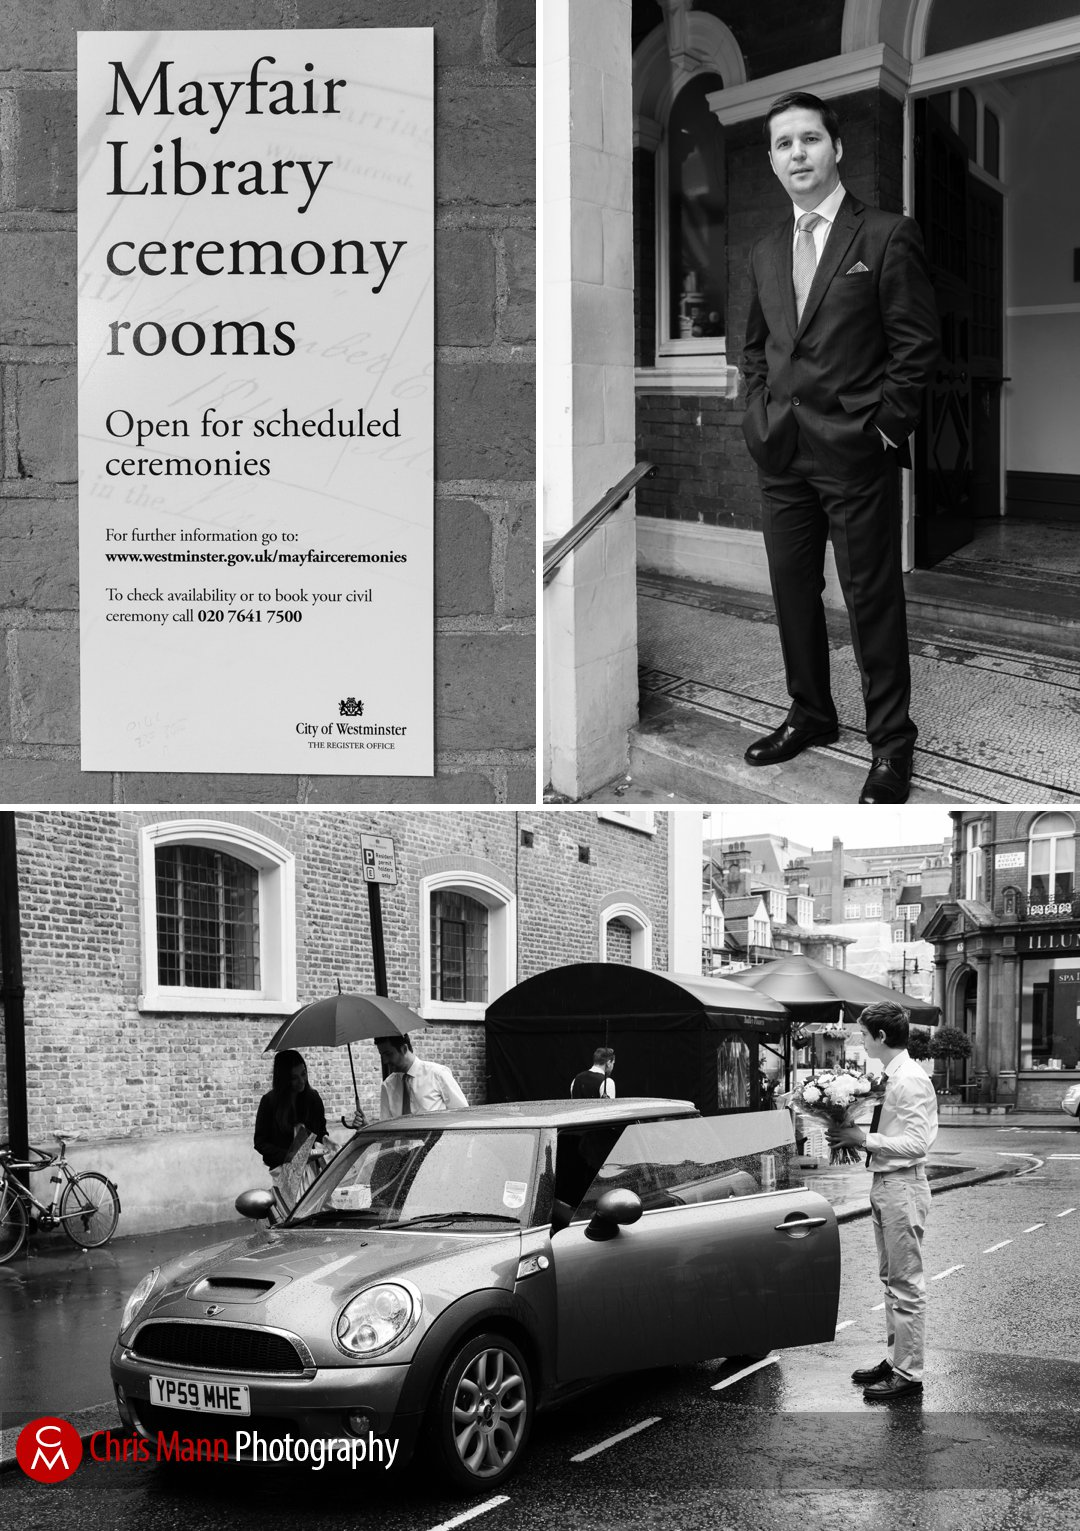 groom arrives at mayfair Library for his civil ceremony